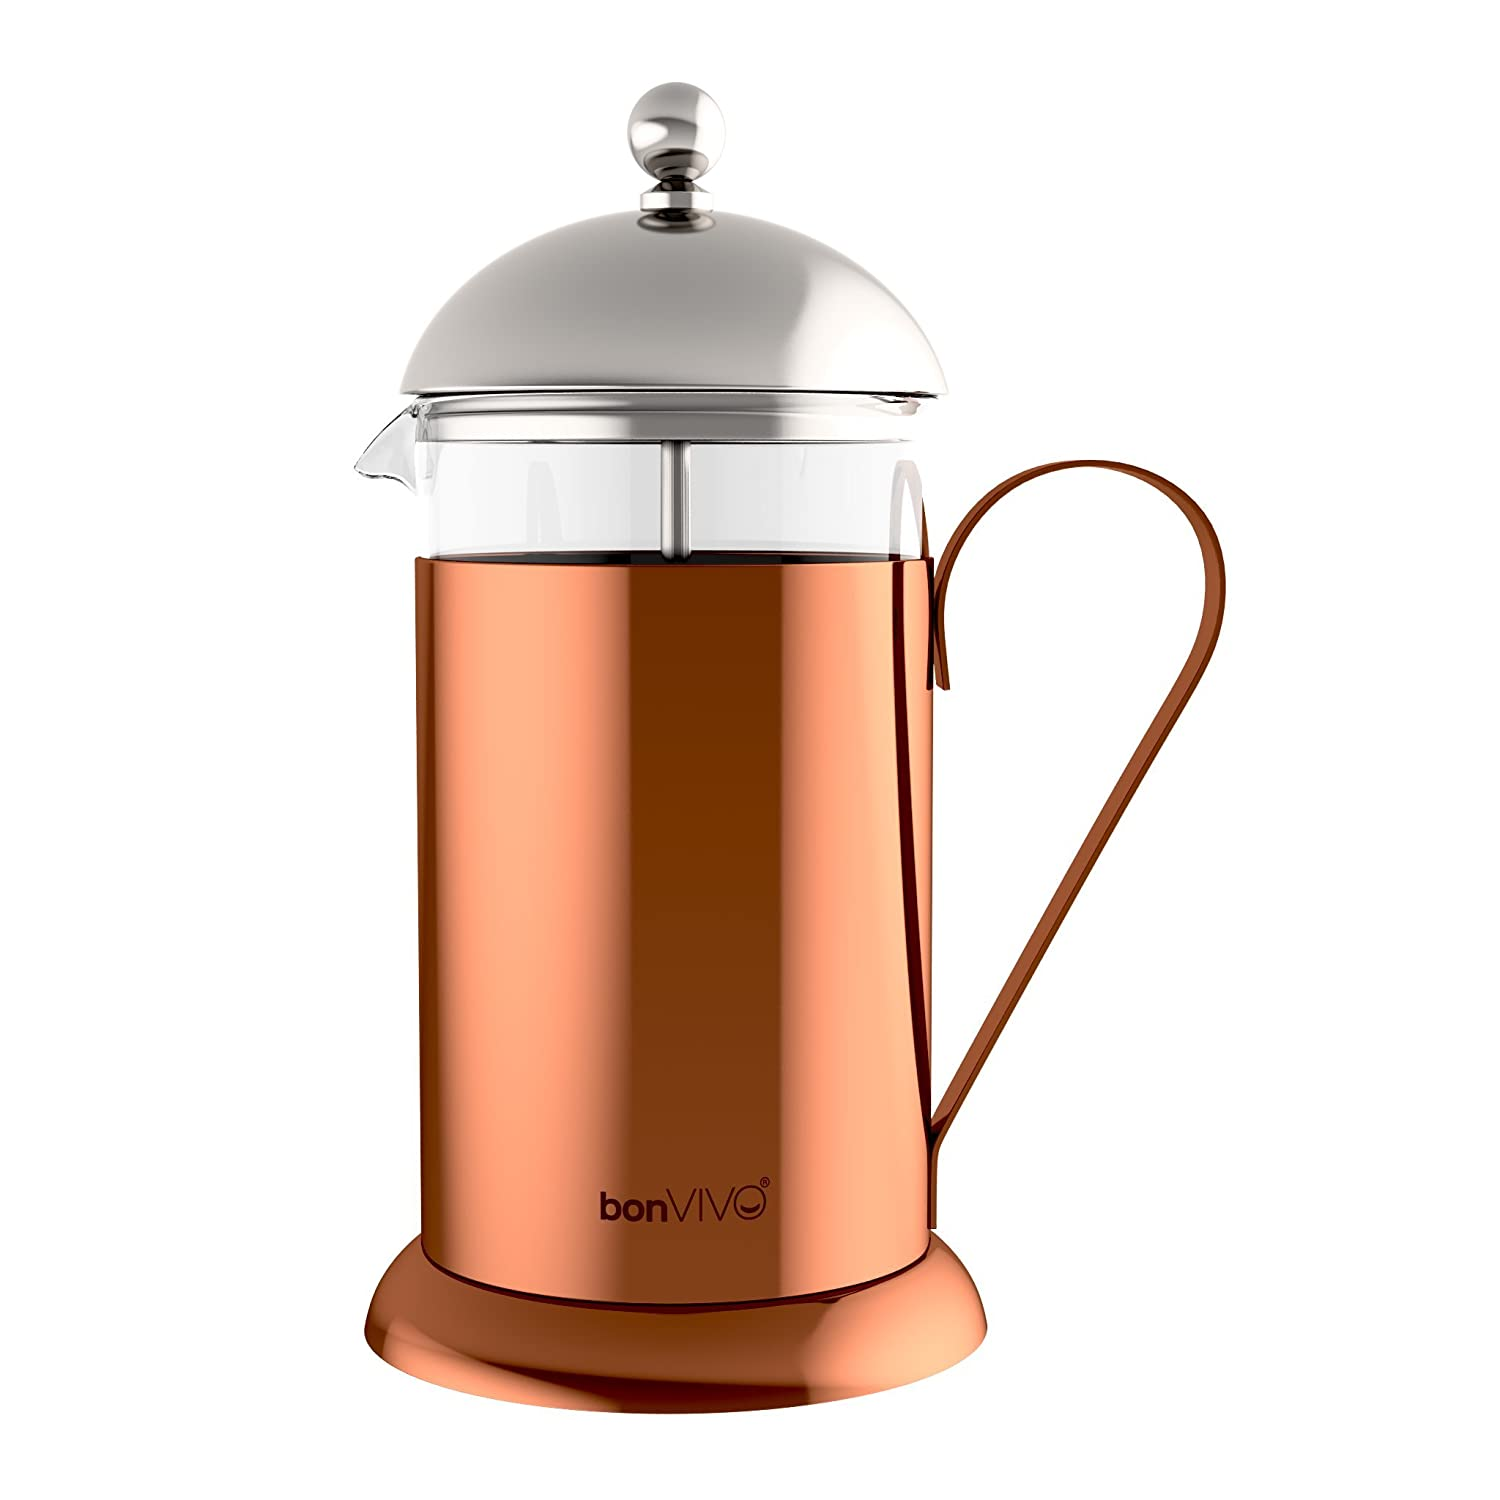 bonVIVO GAZETARO II French Press Coffee Maker, Stainless Steel Cafetiere With Glass Jug, Coffee Plunger With Filter, Manual Coffee Maker With Copper Finish, Coffee Press In Large (34 oz/1.0 l /1,000ml) Bonstato